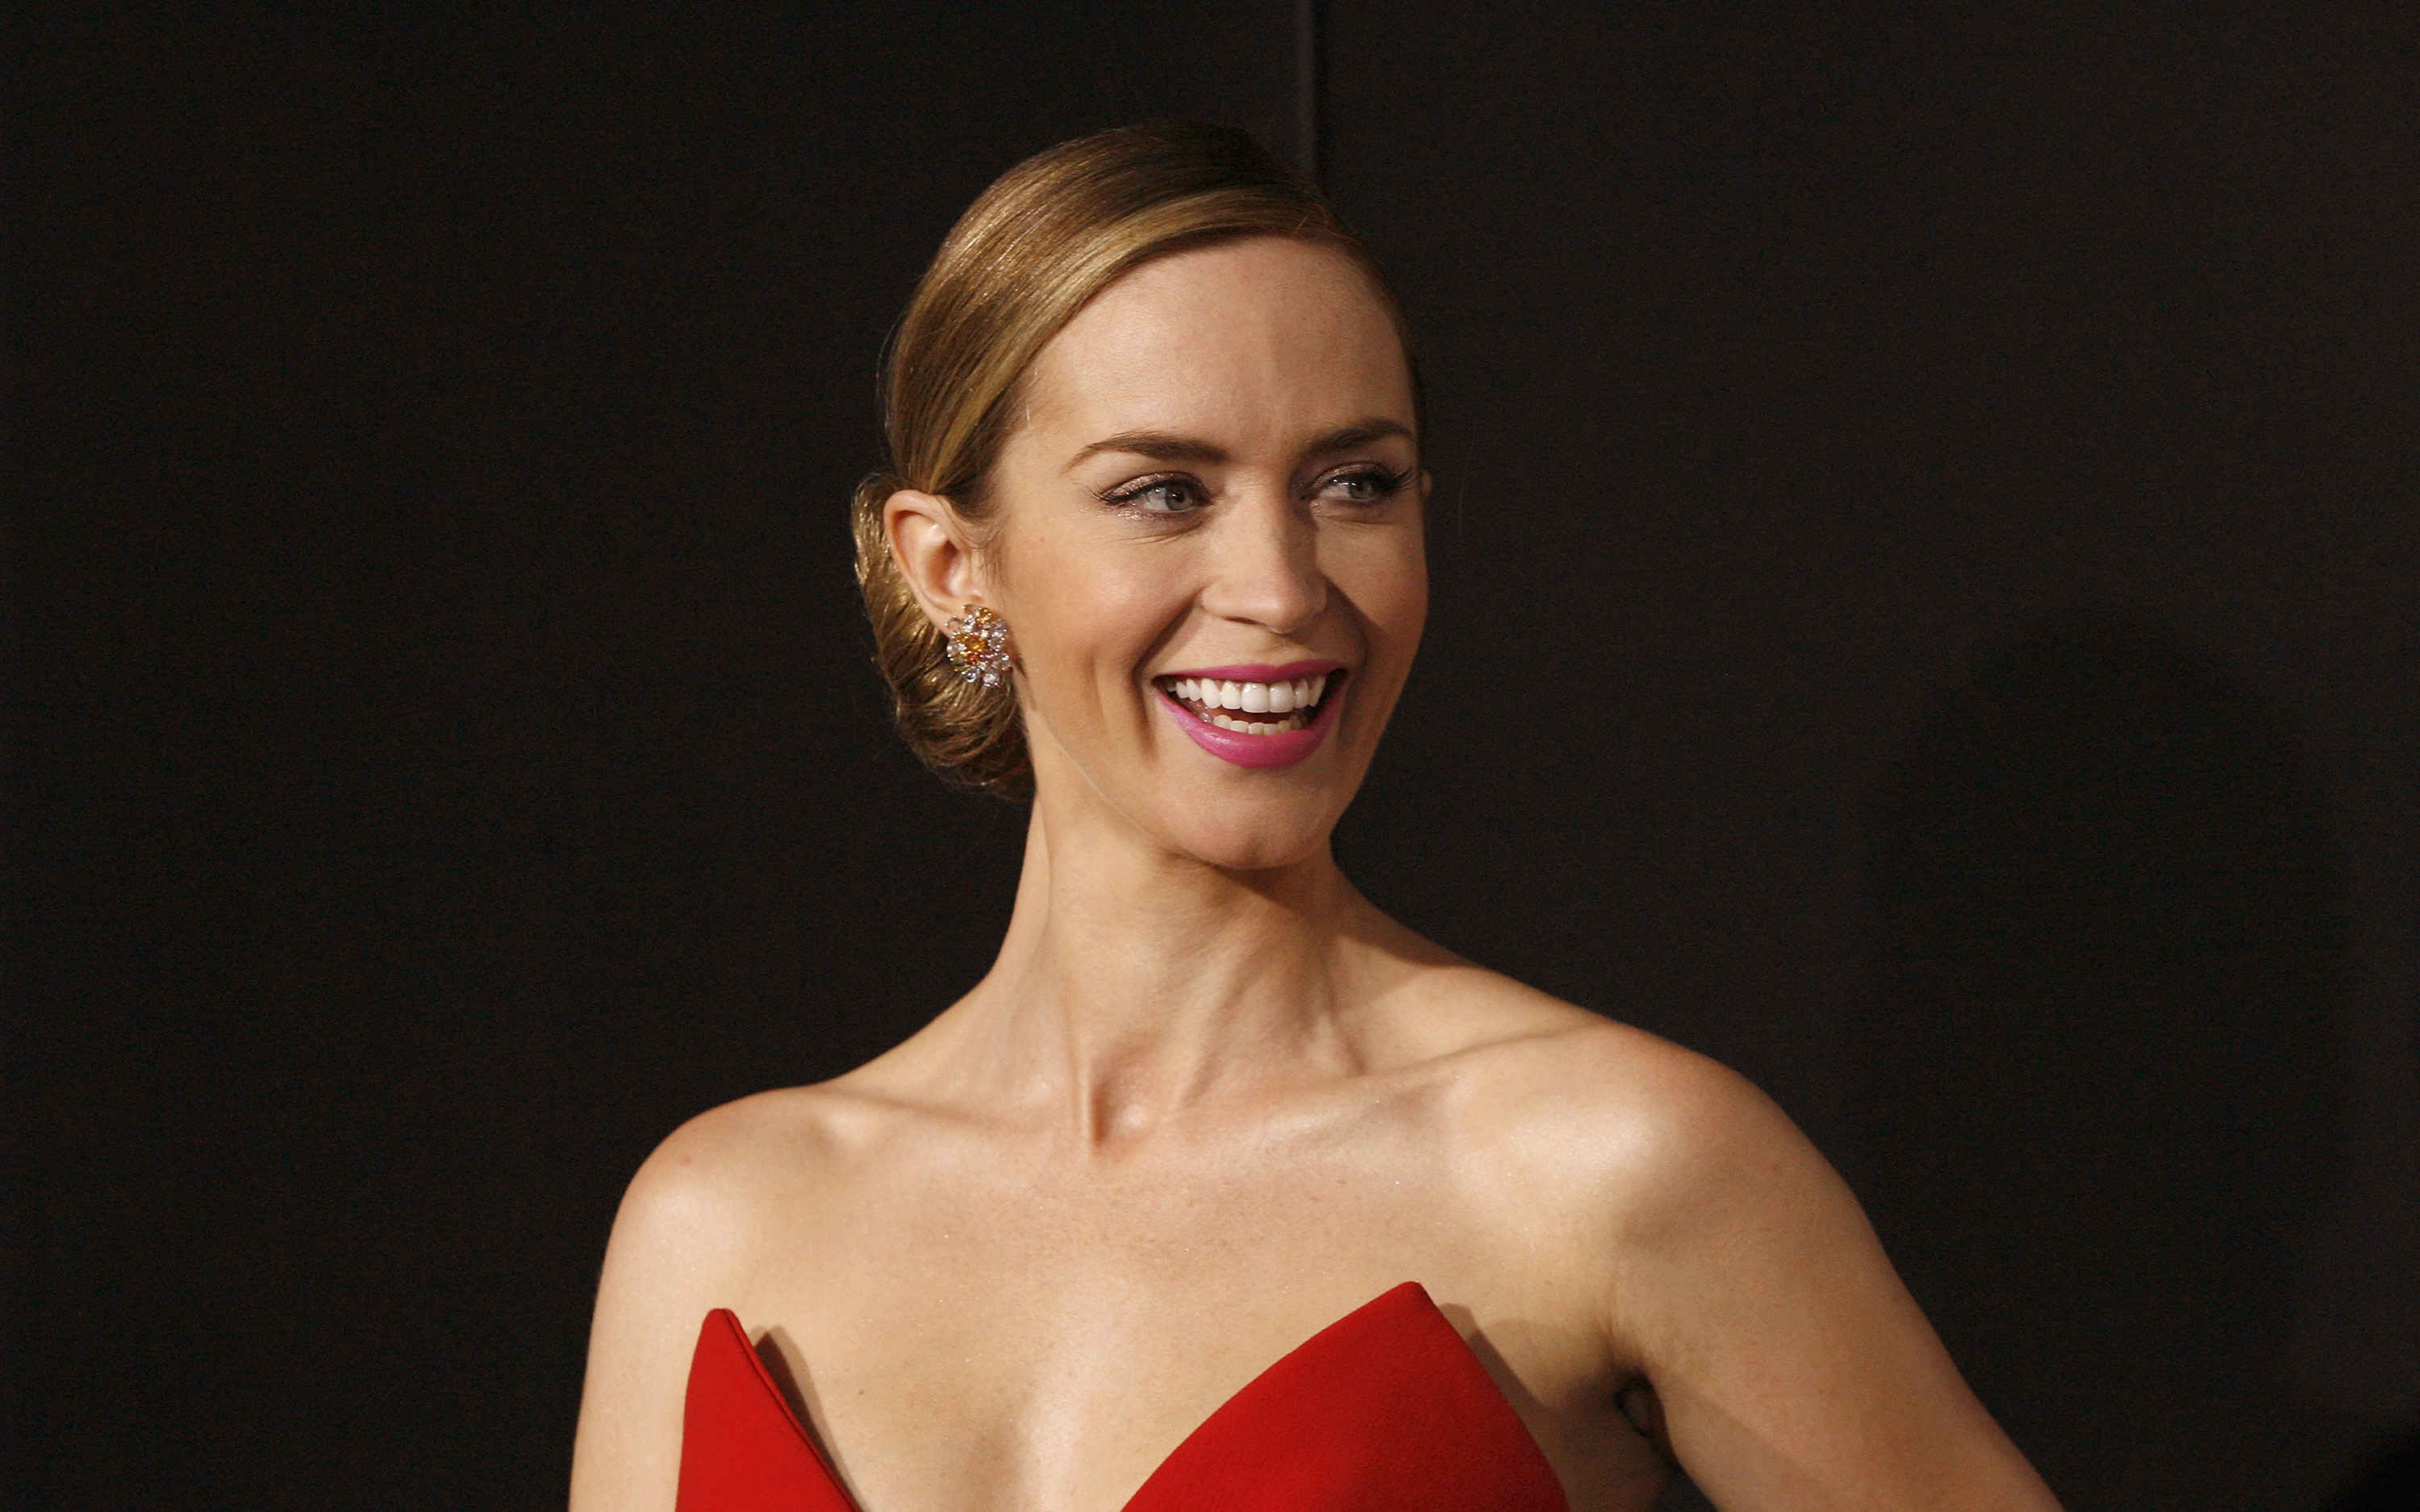 Actress Emily Blunt attends the  Edge Of Tomorrow  red carpet repeat fan premiere tour at AMC Loews Lincoln Square on May 28, 2014 in New York City.